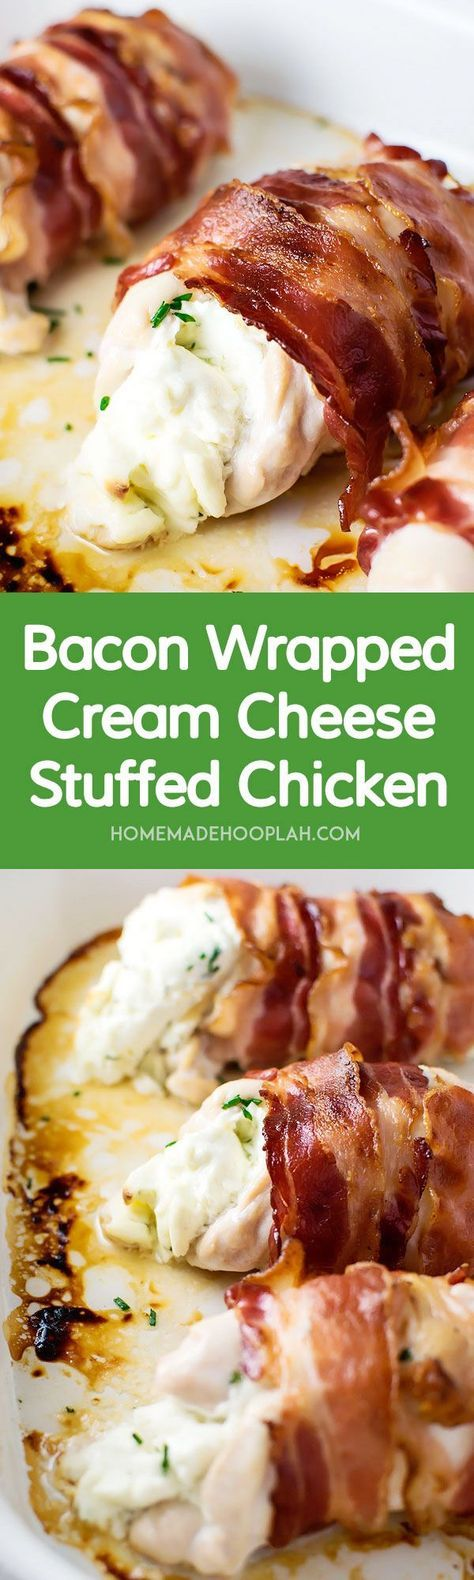 Bacon Wrapped Cream Cheese Stuffed Chicken! Tender chicken breast stuffed with cream cheese and chives wrapped tightly within crispy bacon. | HomemadeHooplah.com